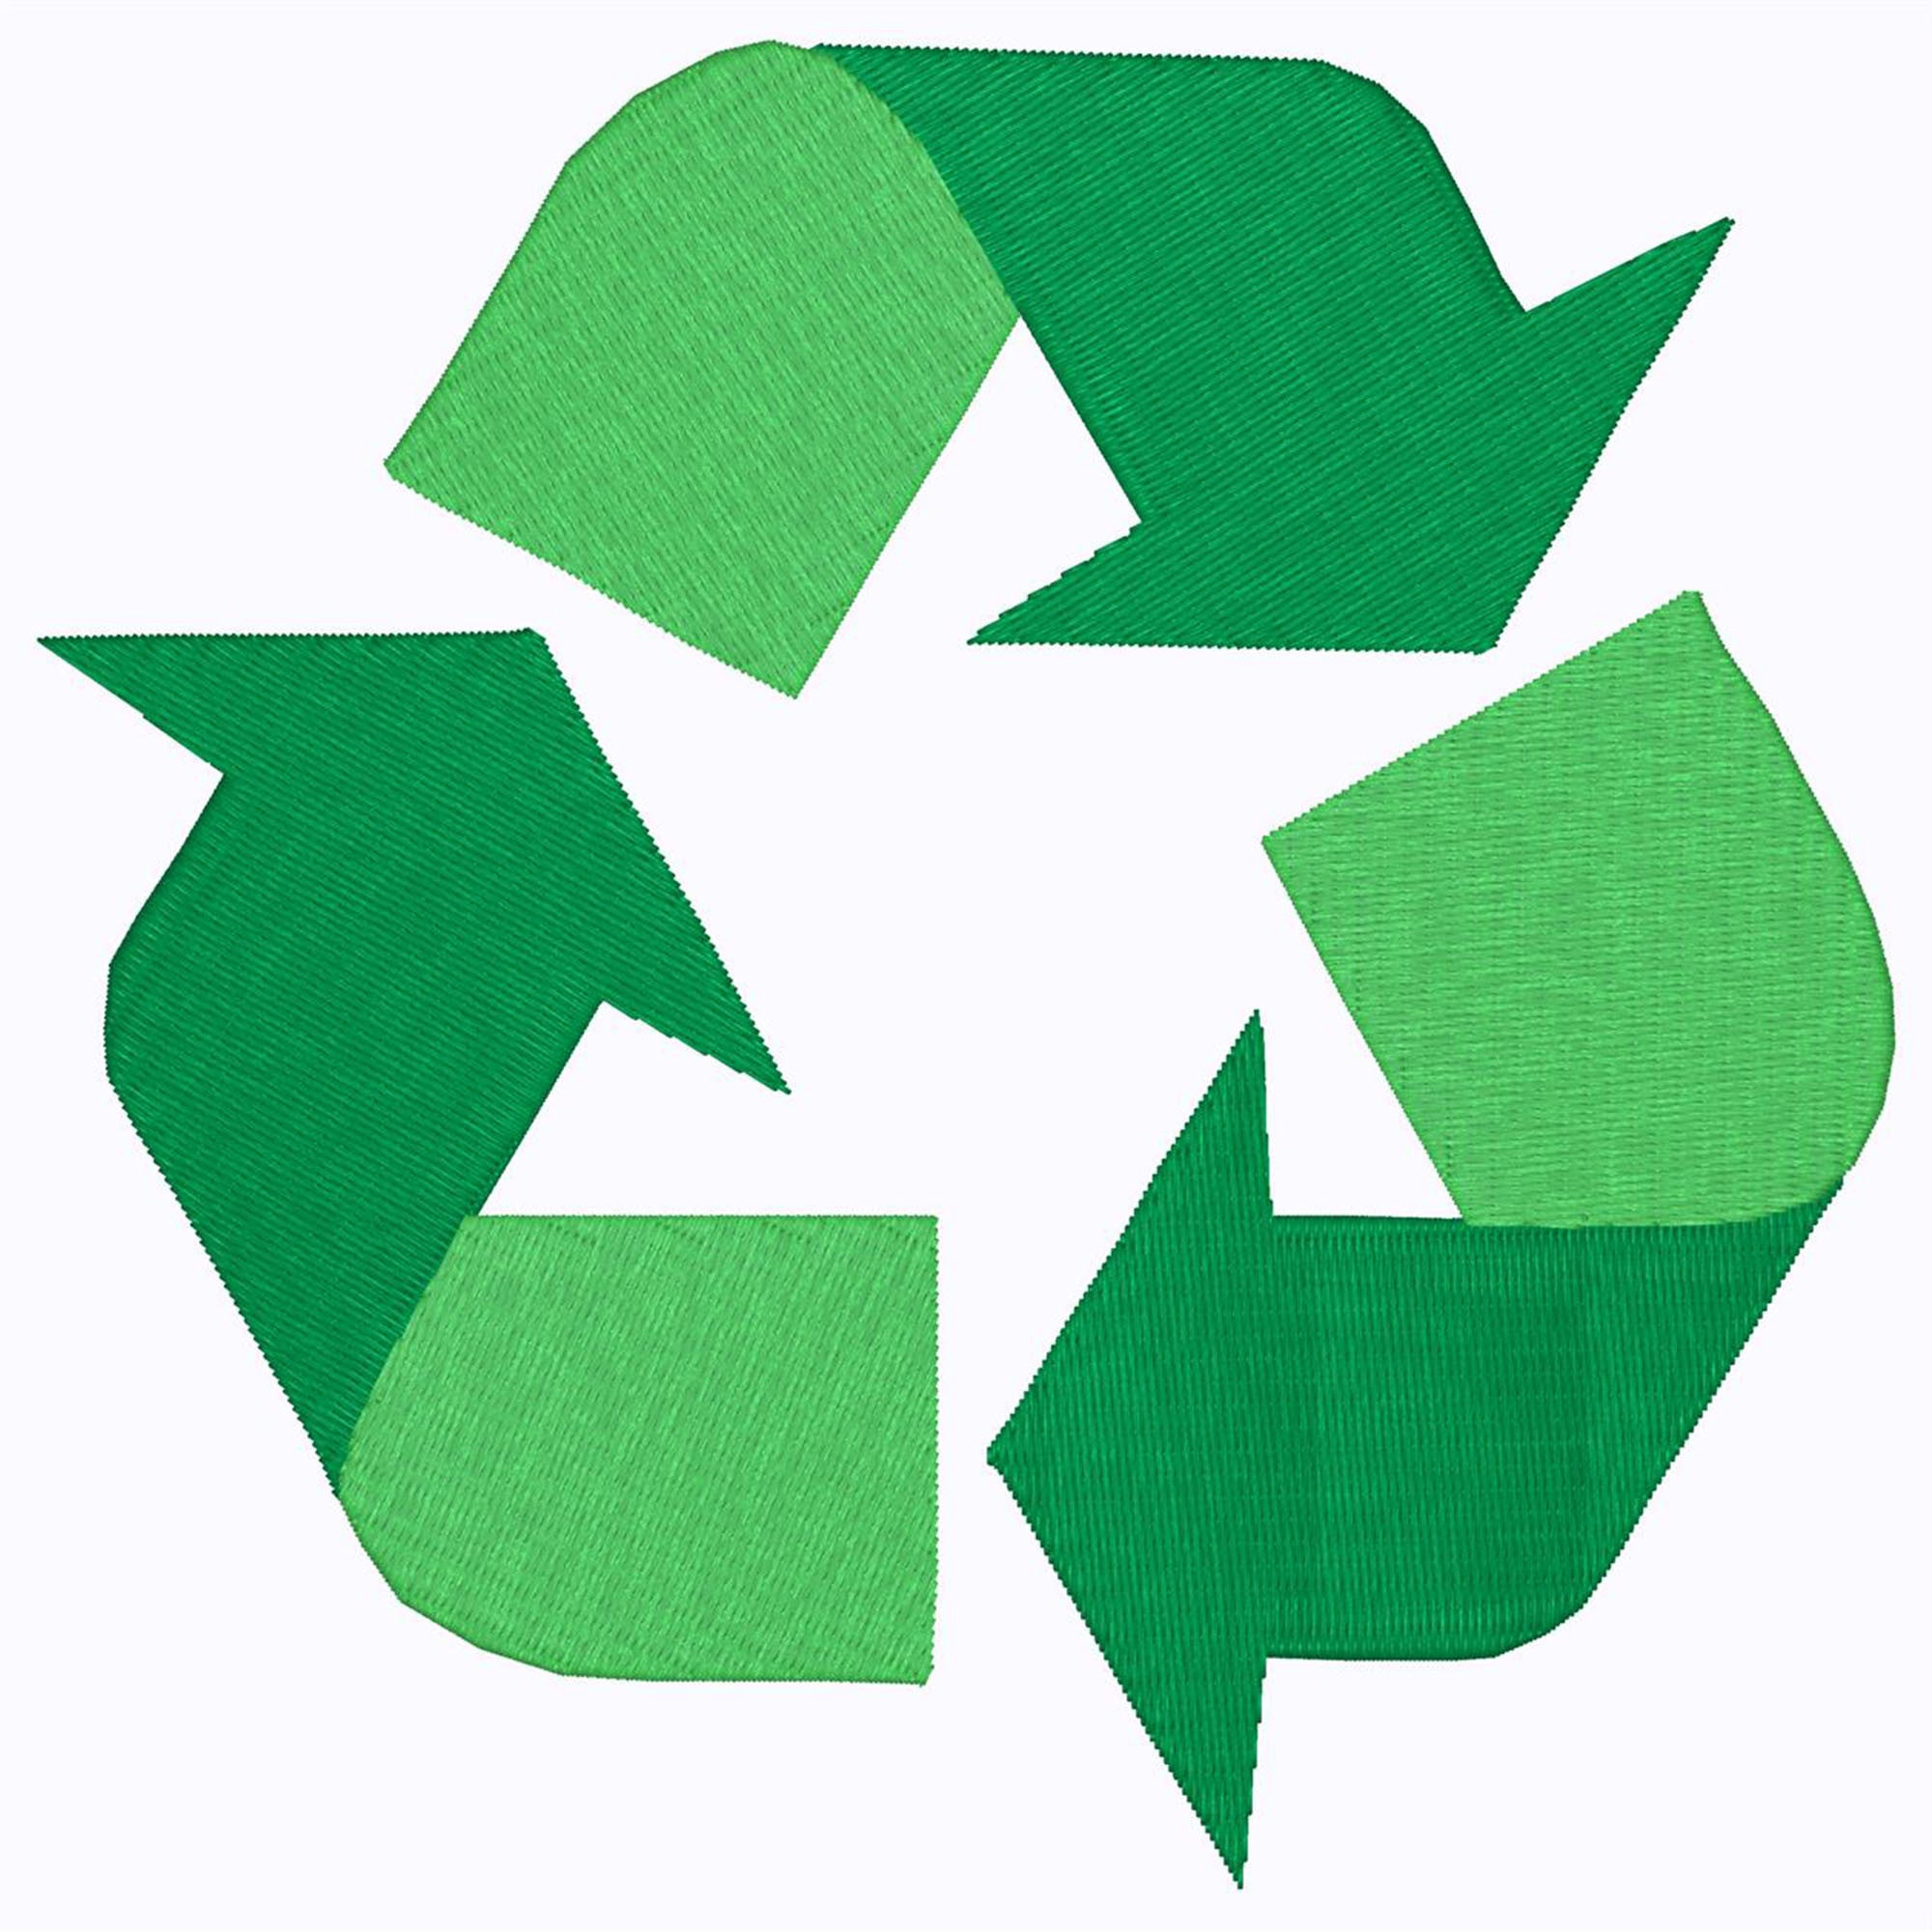 Symbol - Recycle